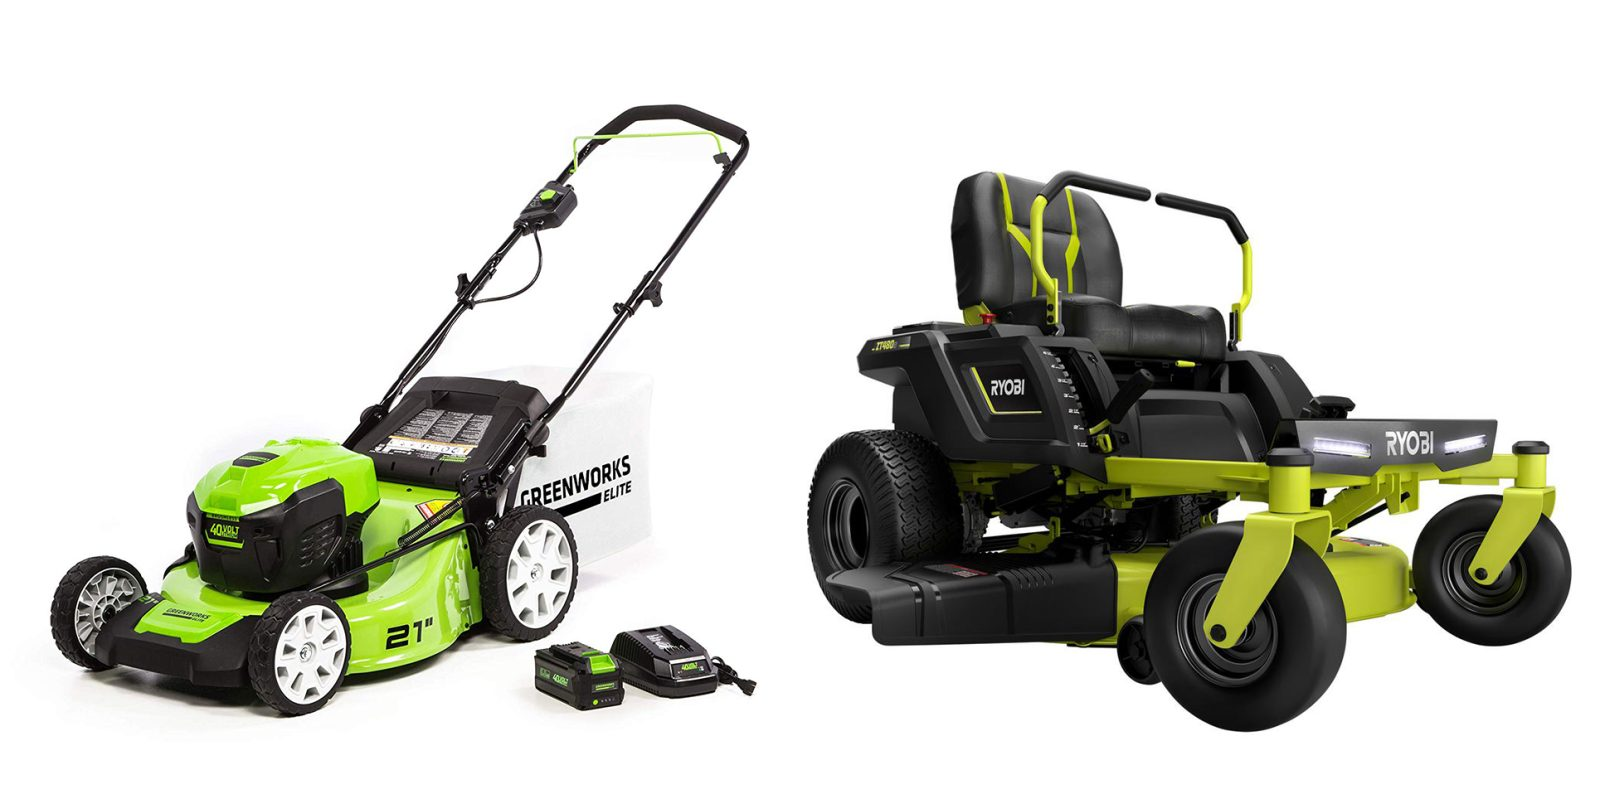 Greenworks And Ryobi Electric Lawn Mower Deals Electrek